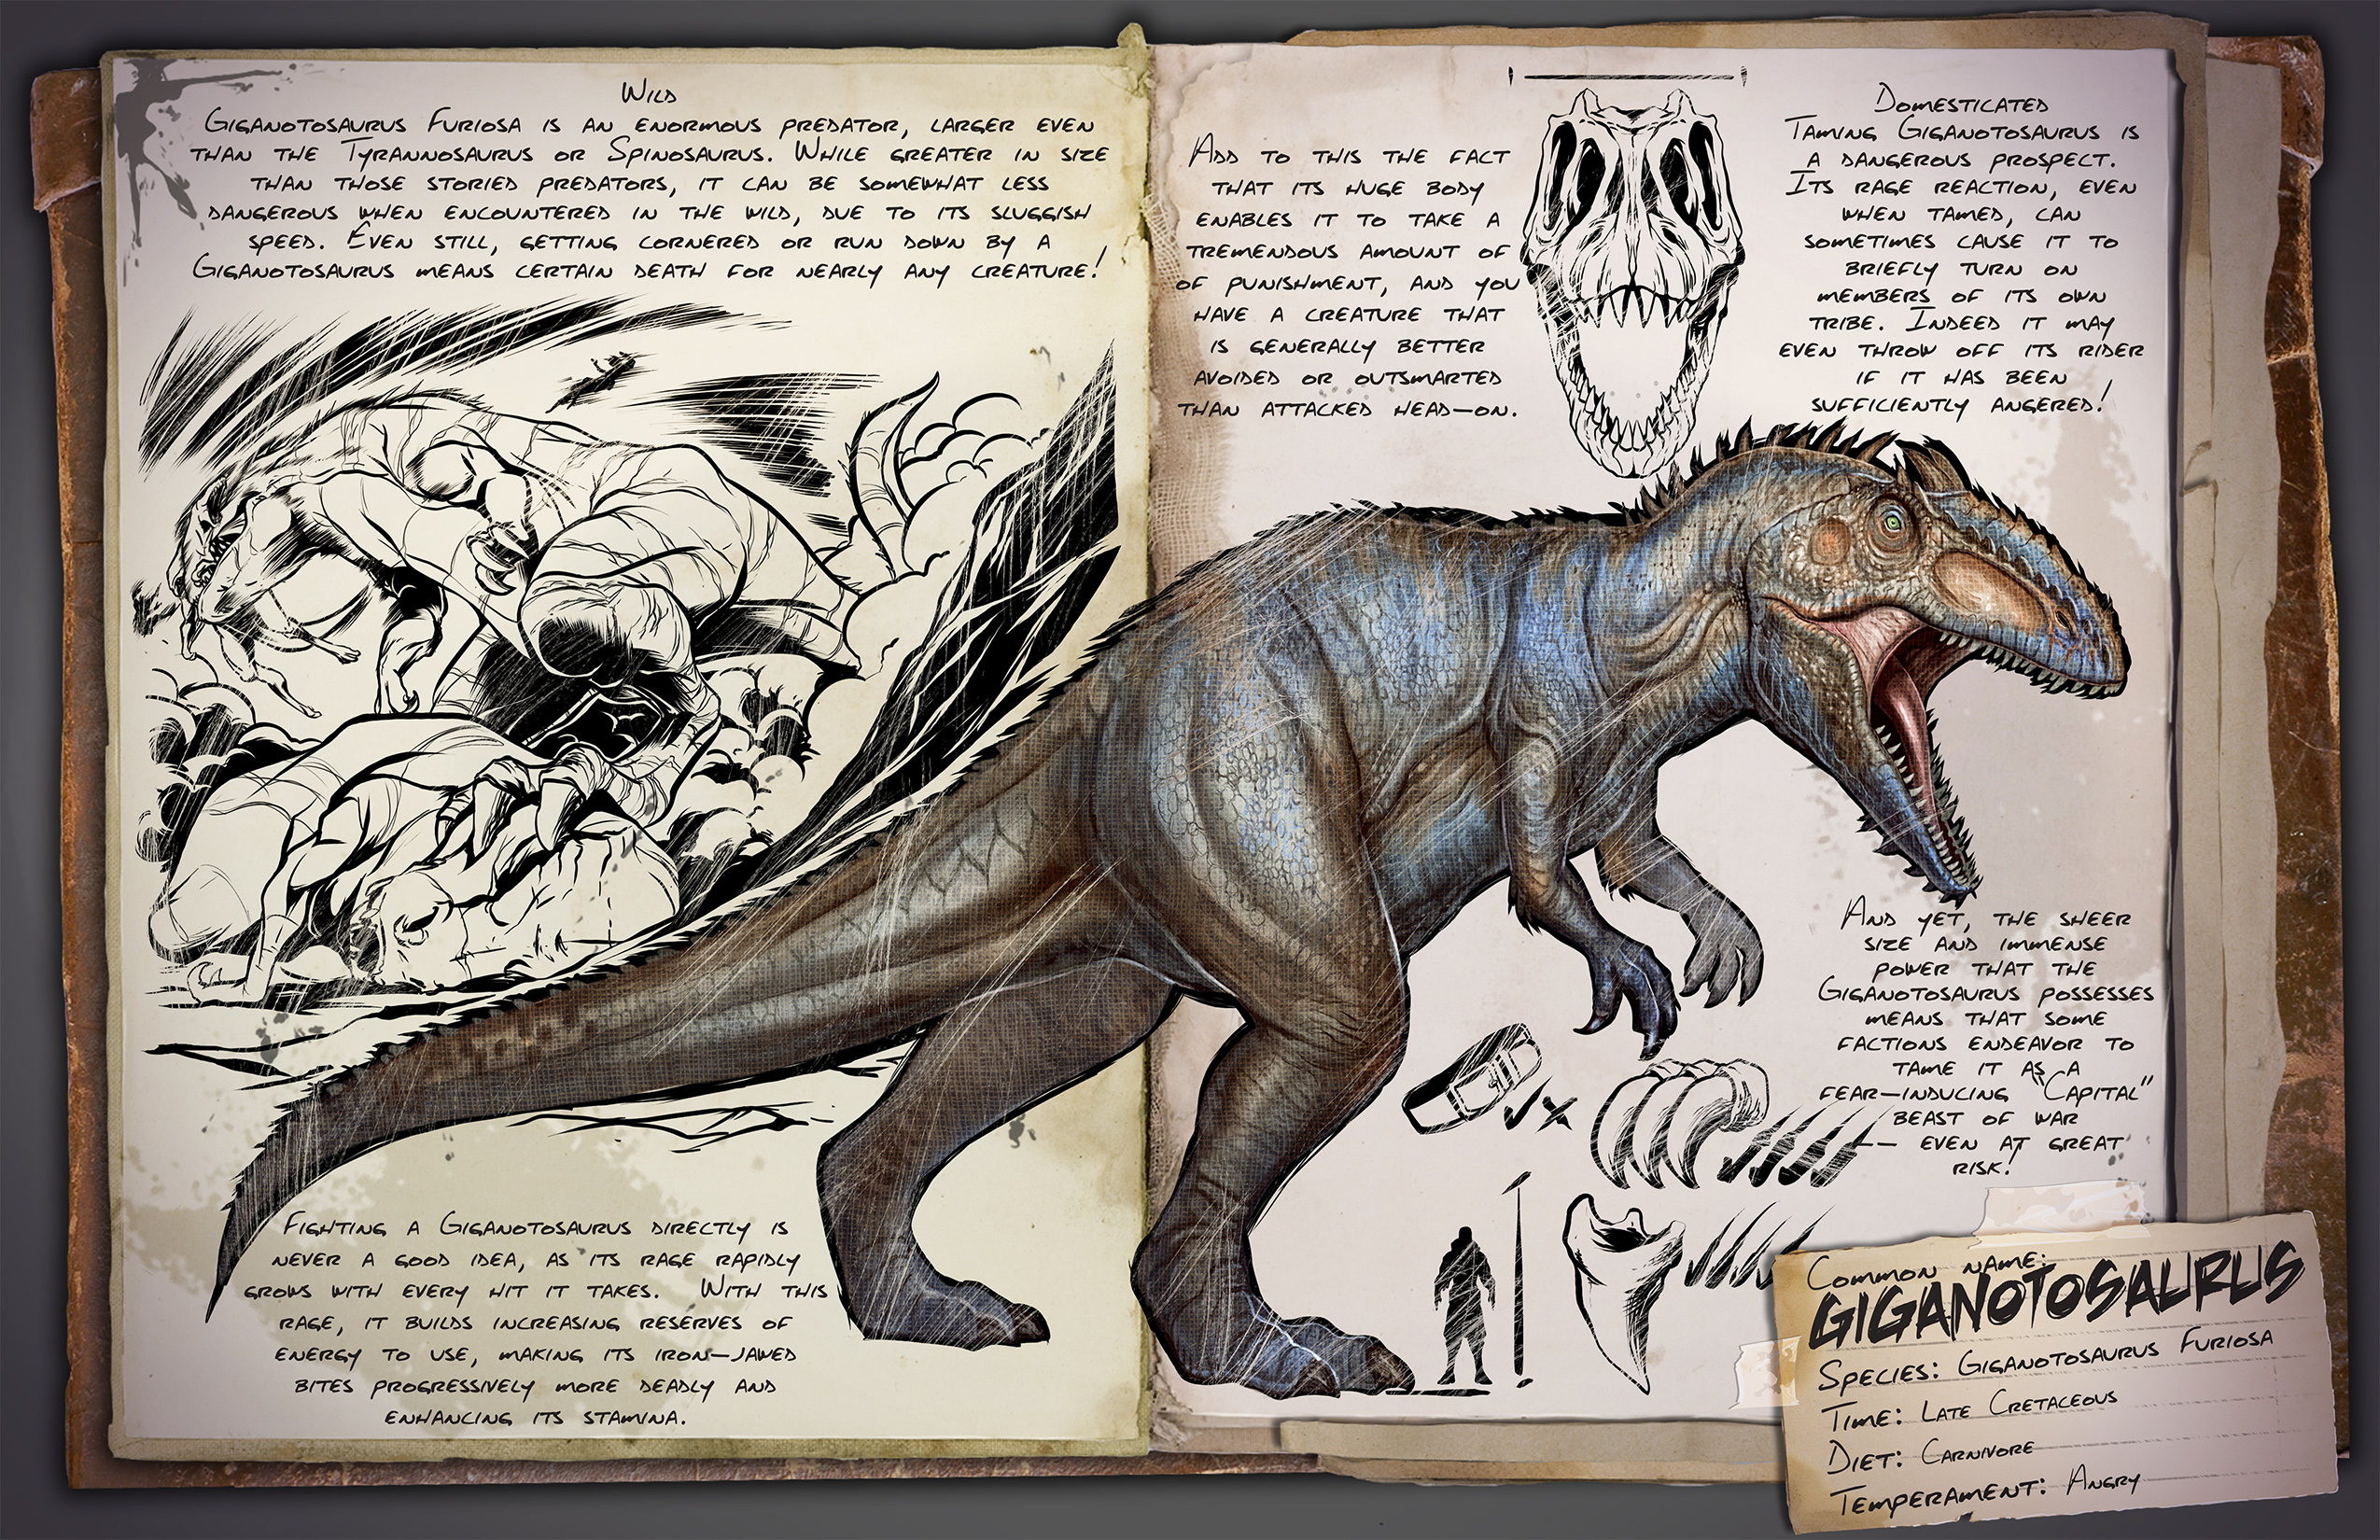 Giganotosaurus Ark Survival Evolved Wiki Fandom The ark id for daeodon is daeodon_character_bp_c, this is commonly referred to as a creature id. giganotosaurus ark survival evolved